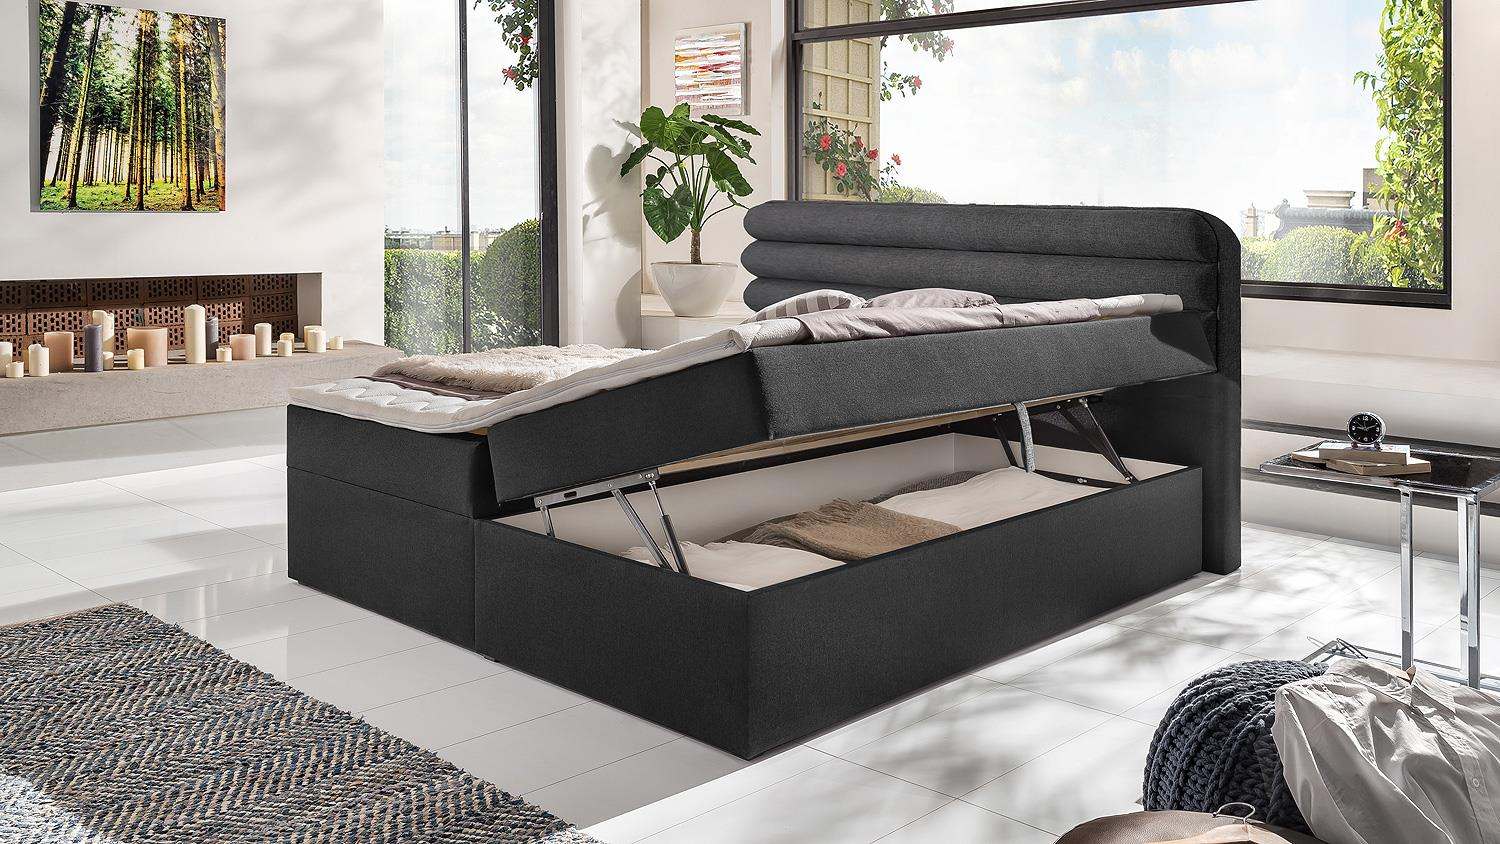 doppelbett malloca funktionsbett stauraum federkernbox mit topper. Black Bedroom Furniture Sets. Home Design Ideas